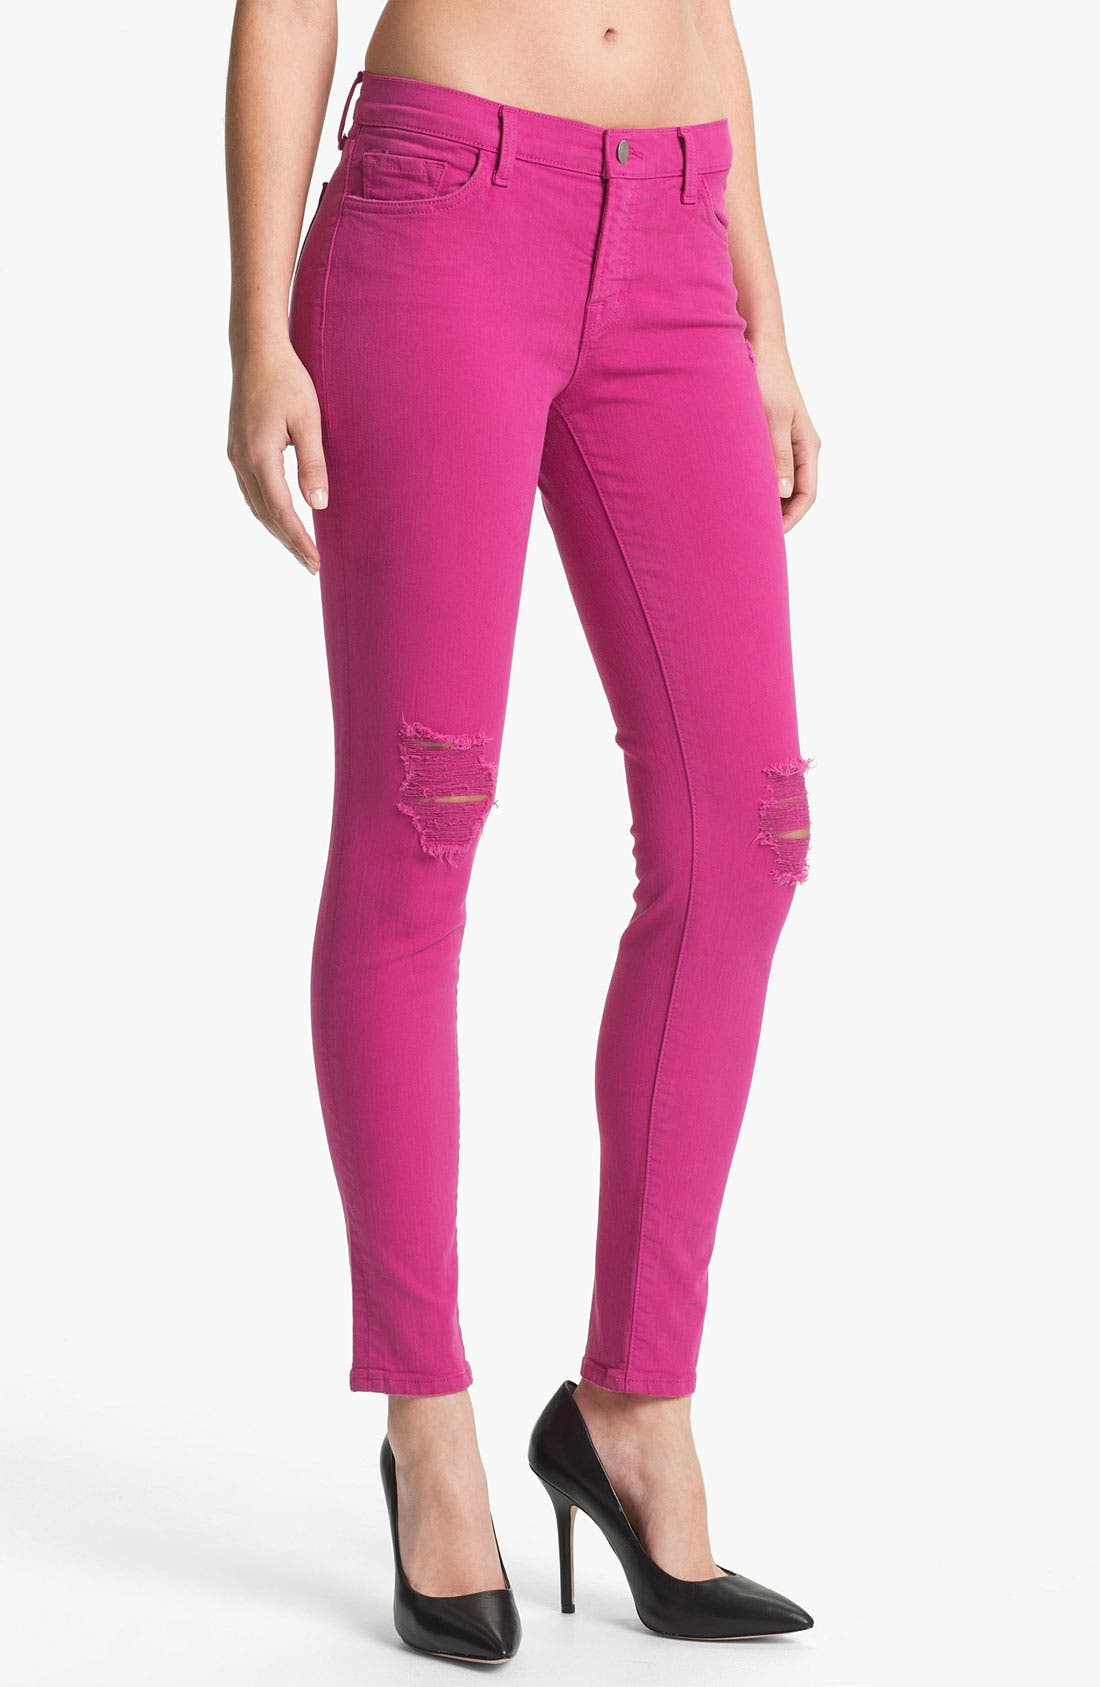 Alternate Image 1 Selected - J Brand Distressed Skinny Leg Jeans (Magenta)